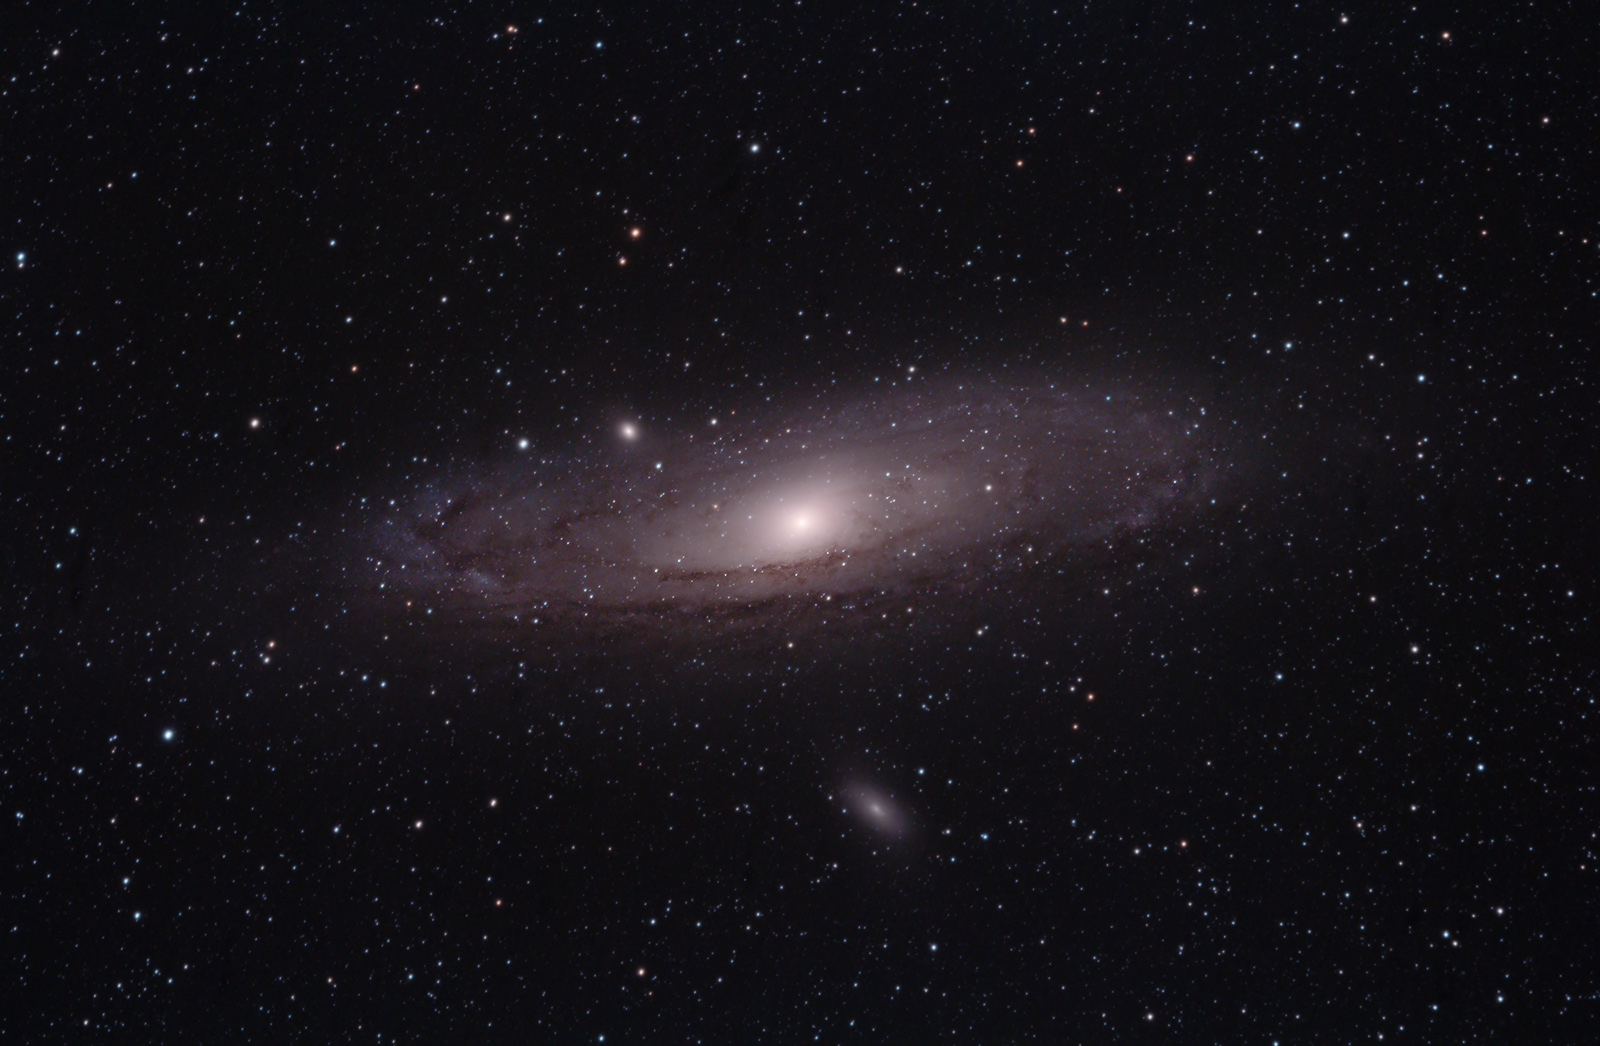 Photographing The Andromeda Galaxy Through A Small Telescope